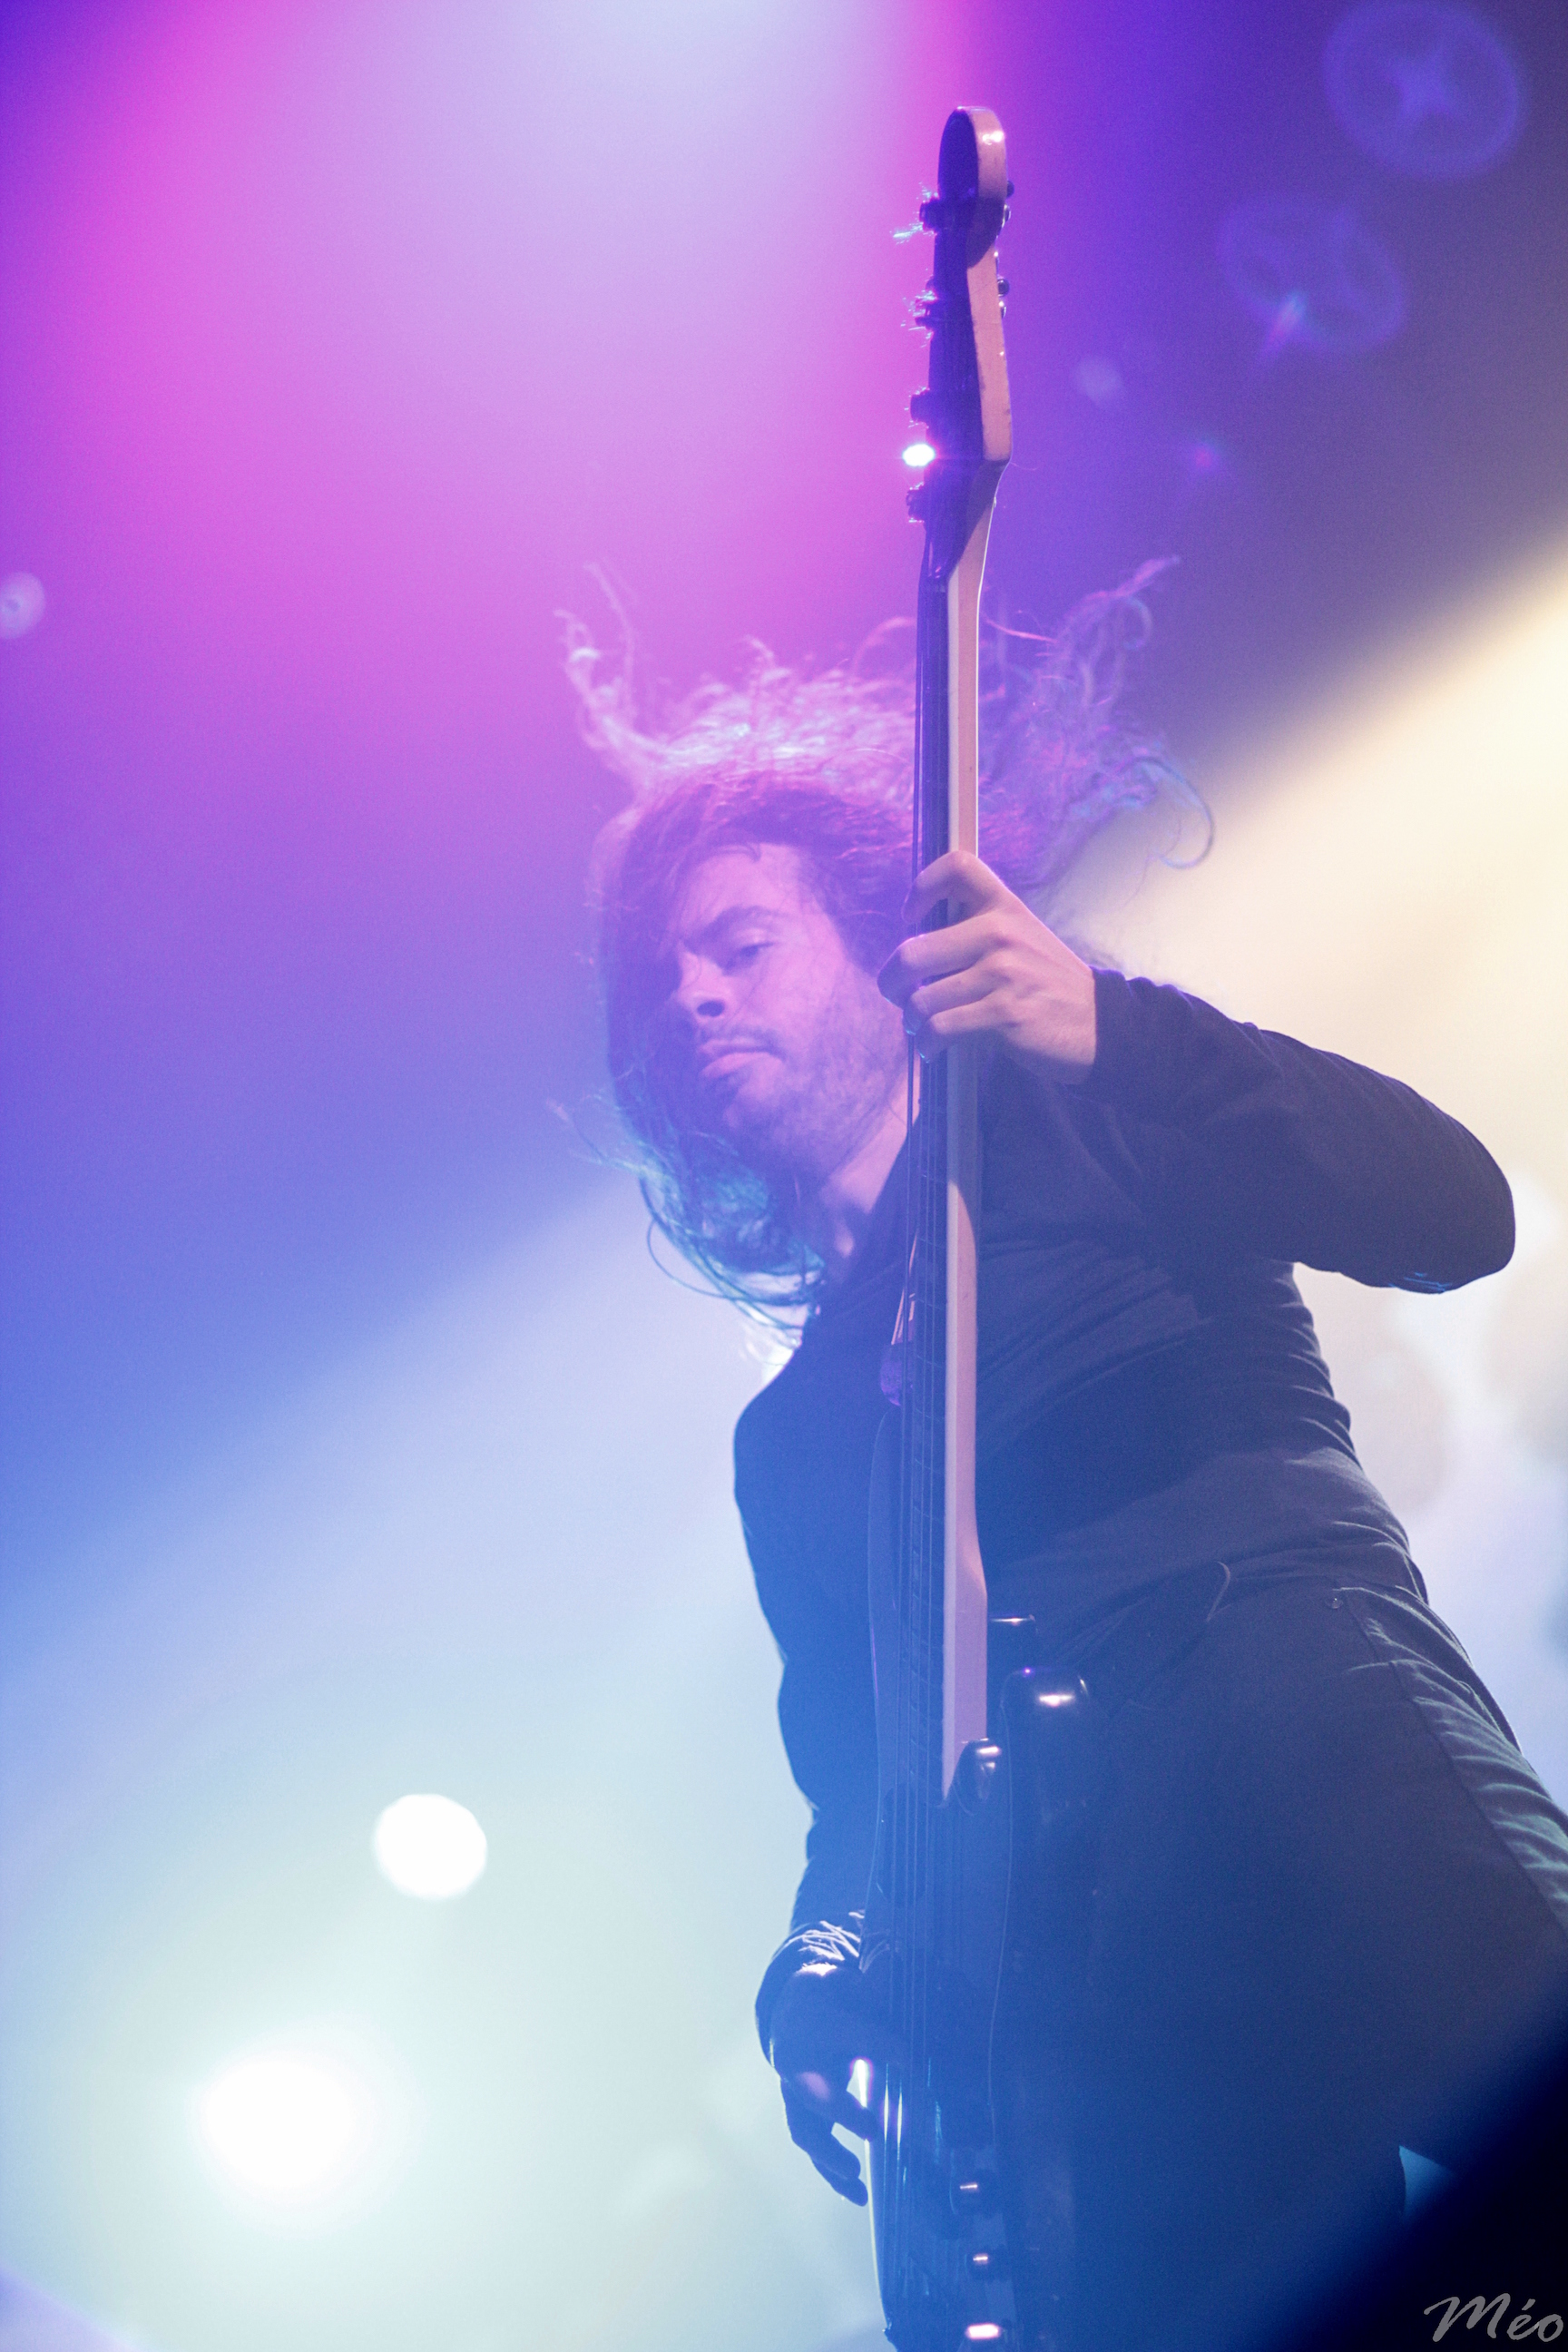 Uncle Acid and the Deadbeats (Hellfest 2019 - Vendredi 21/06/2019)